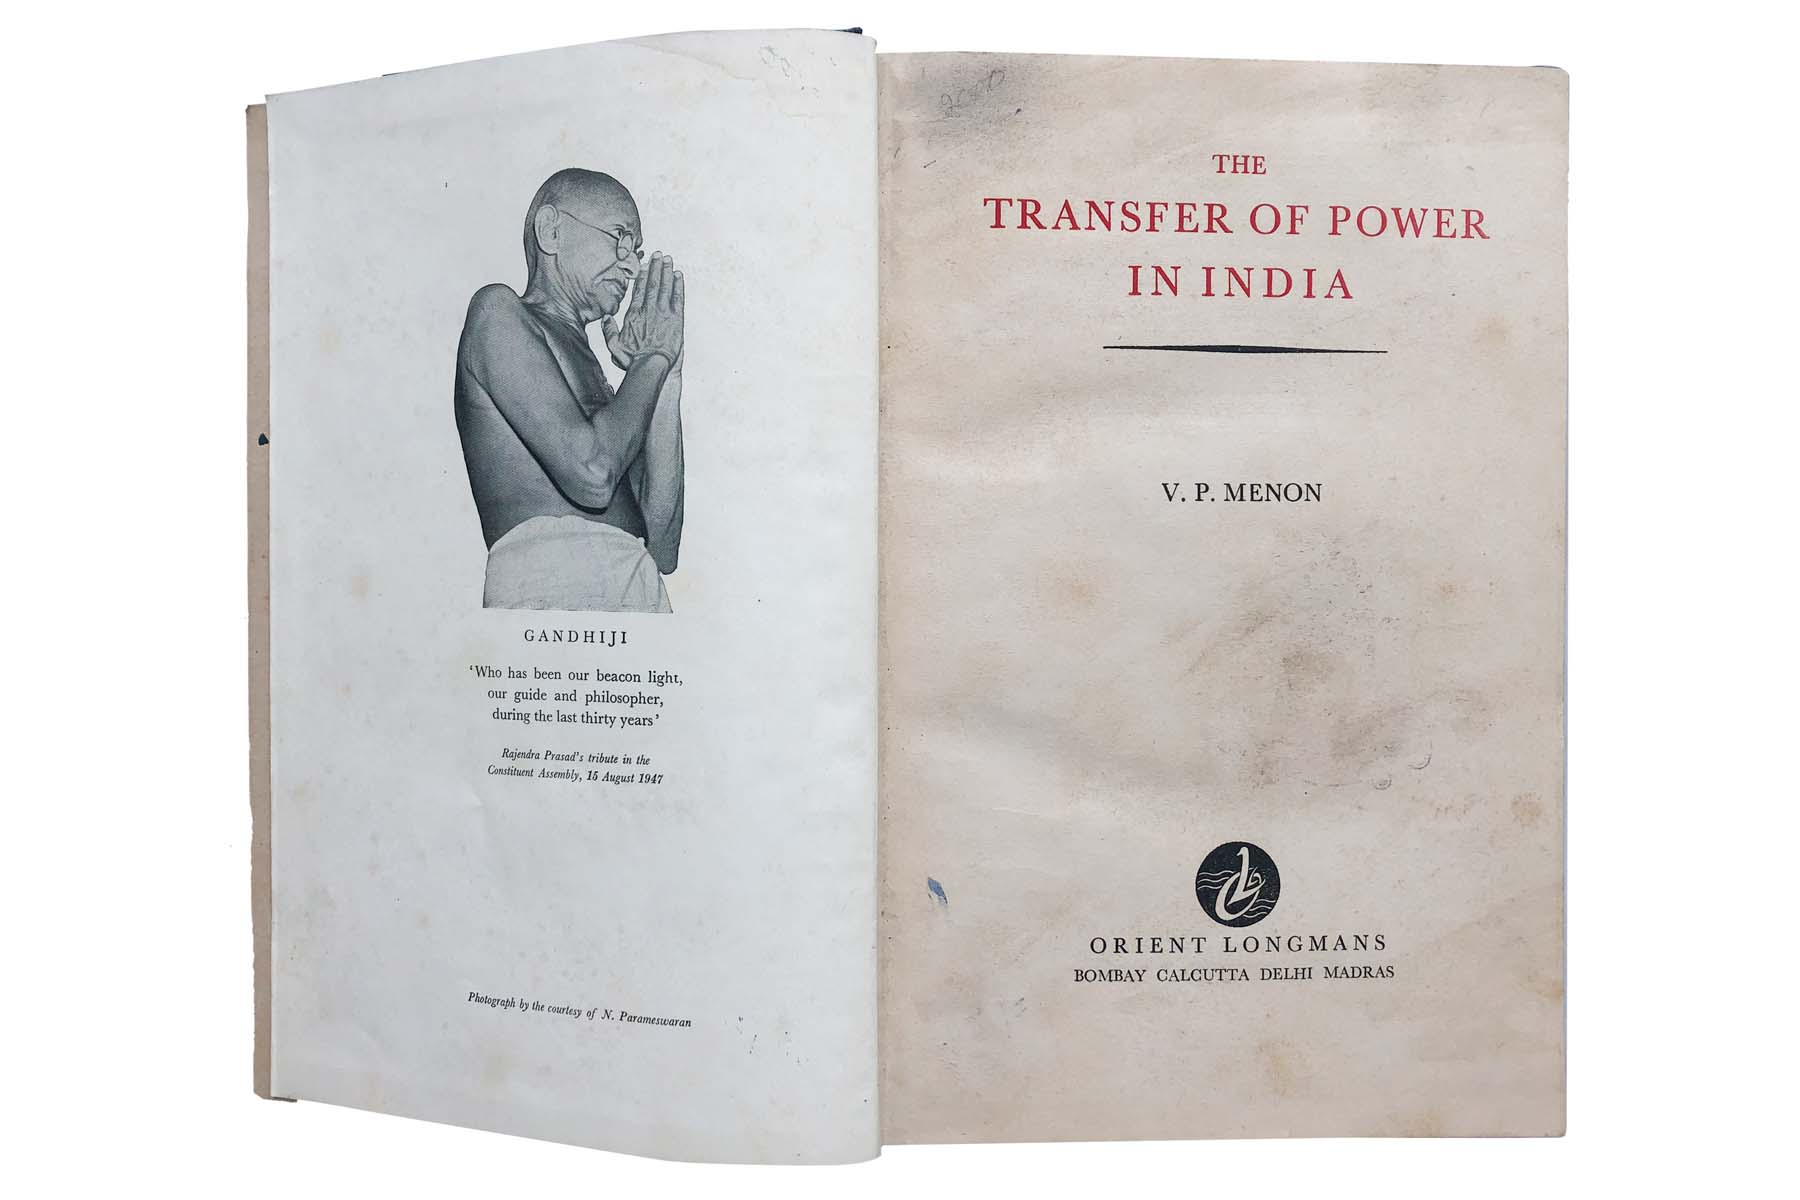 THE TRANSFER OF POWER IN INDIA